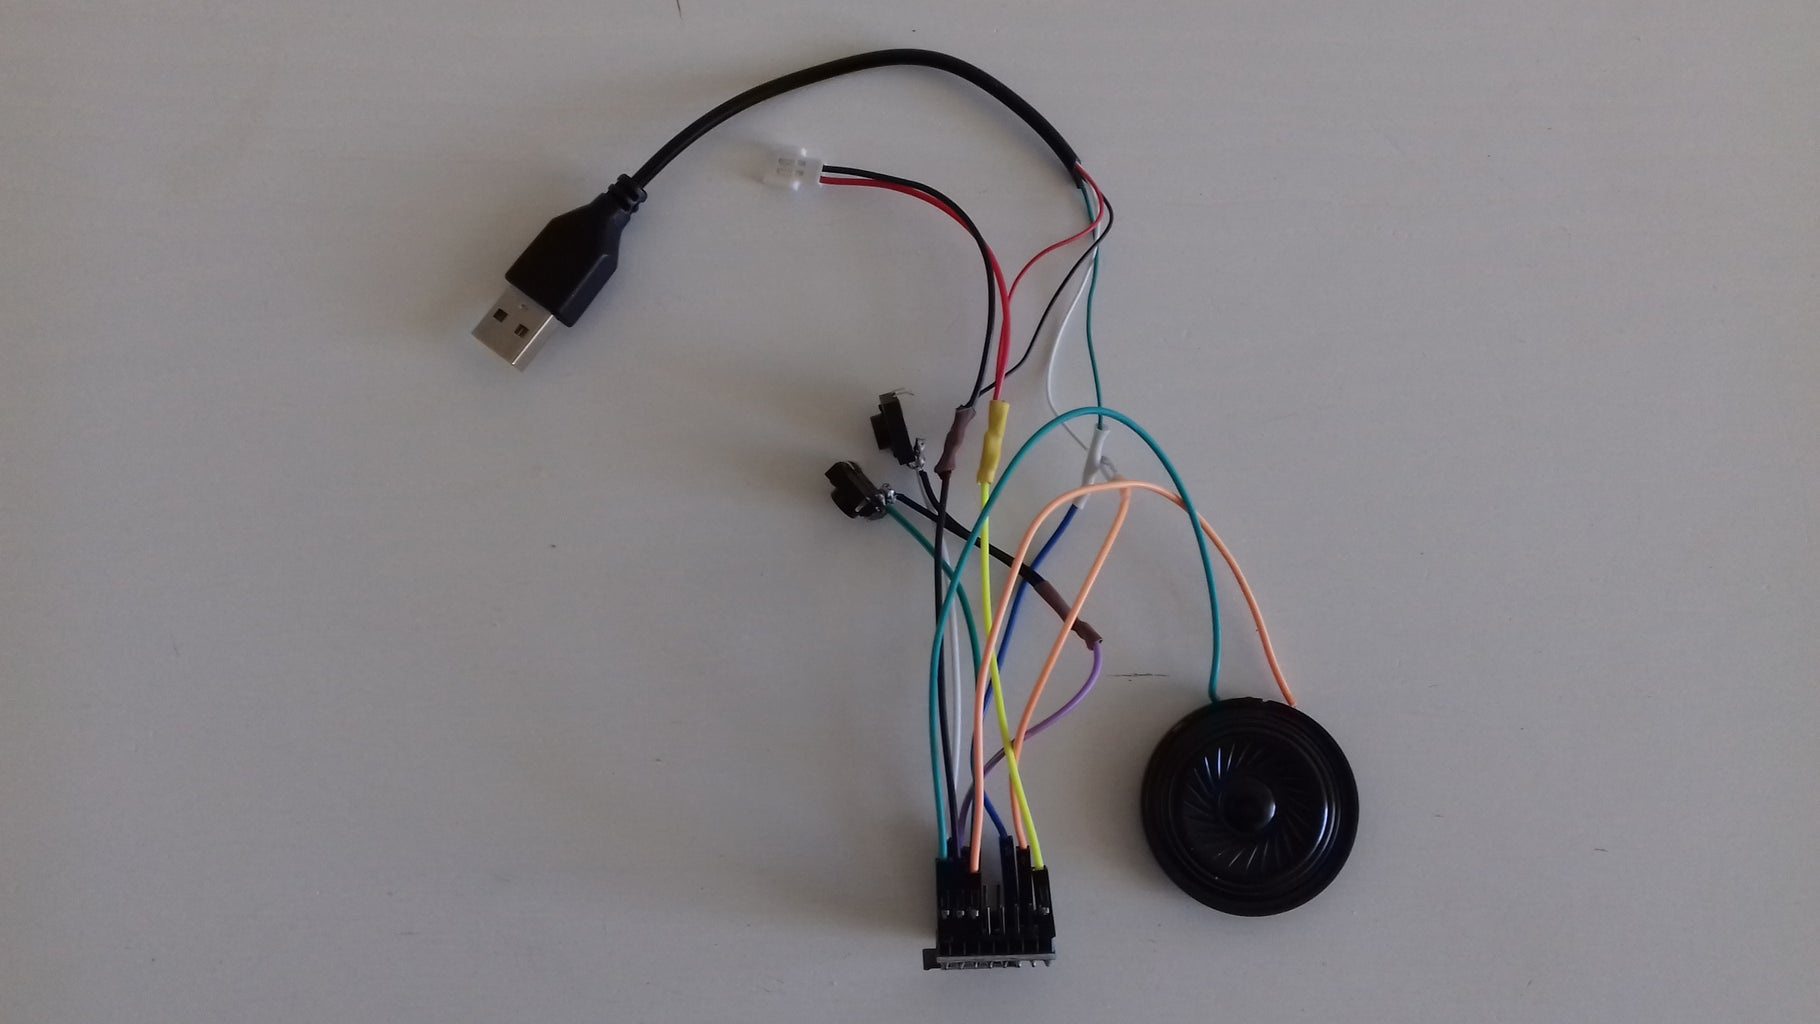 From an IKEA Vackis Alarm Clock to a Cool MP3 Player With USB Cable Using a DFPlayer Sound Module